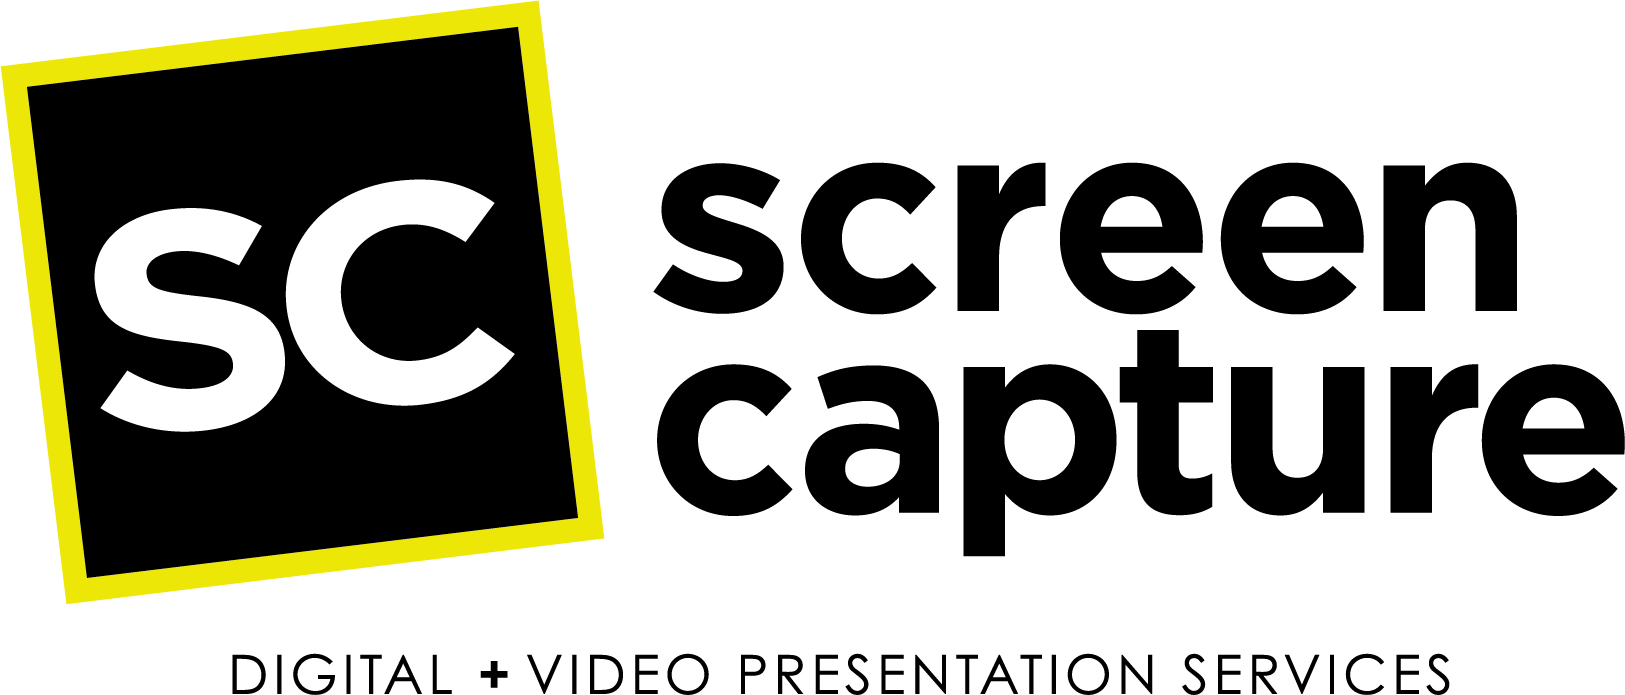 screen capture logo JPG.jpg